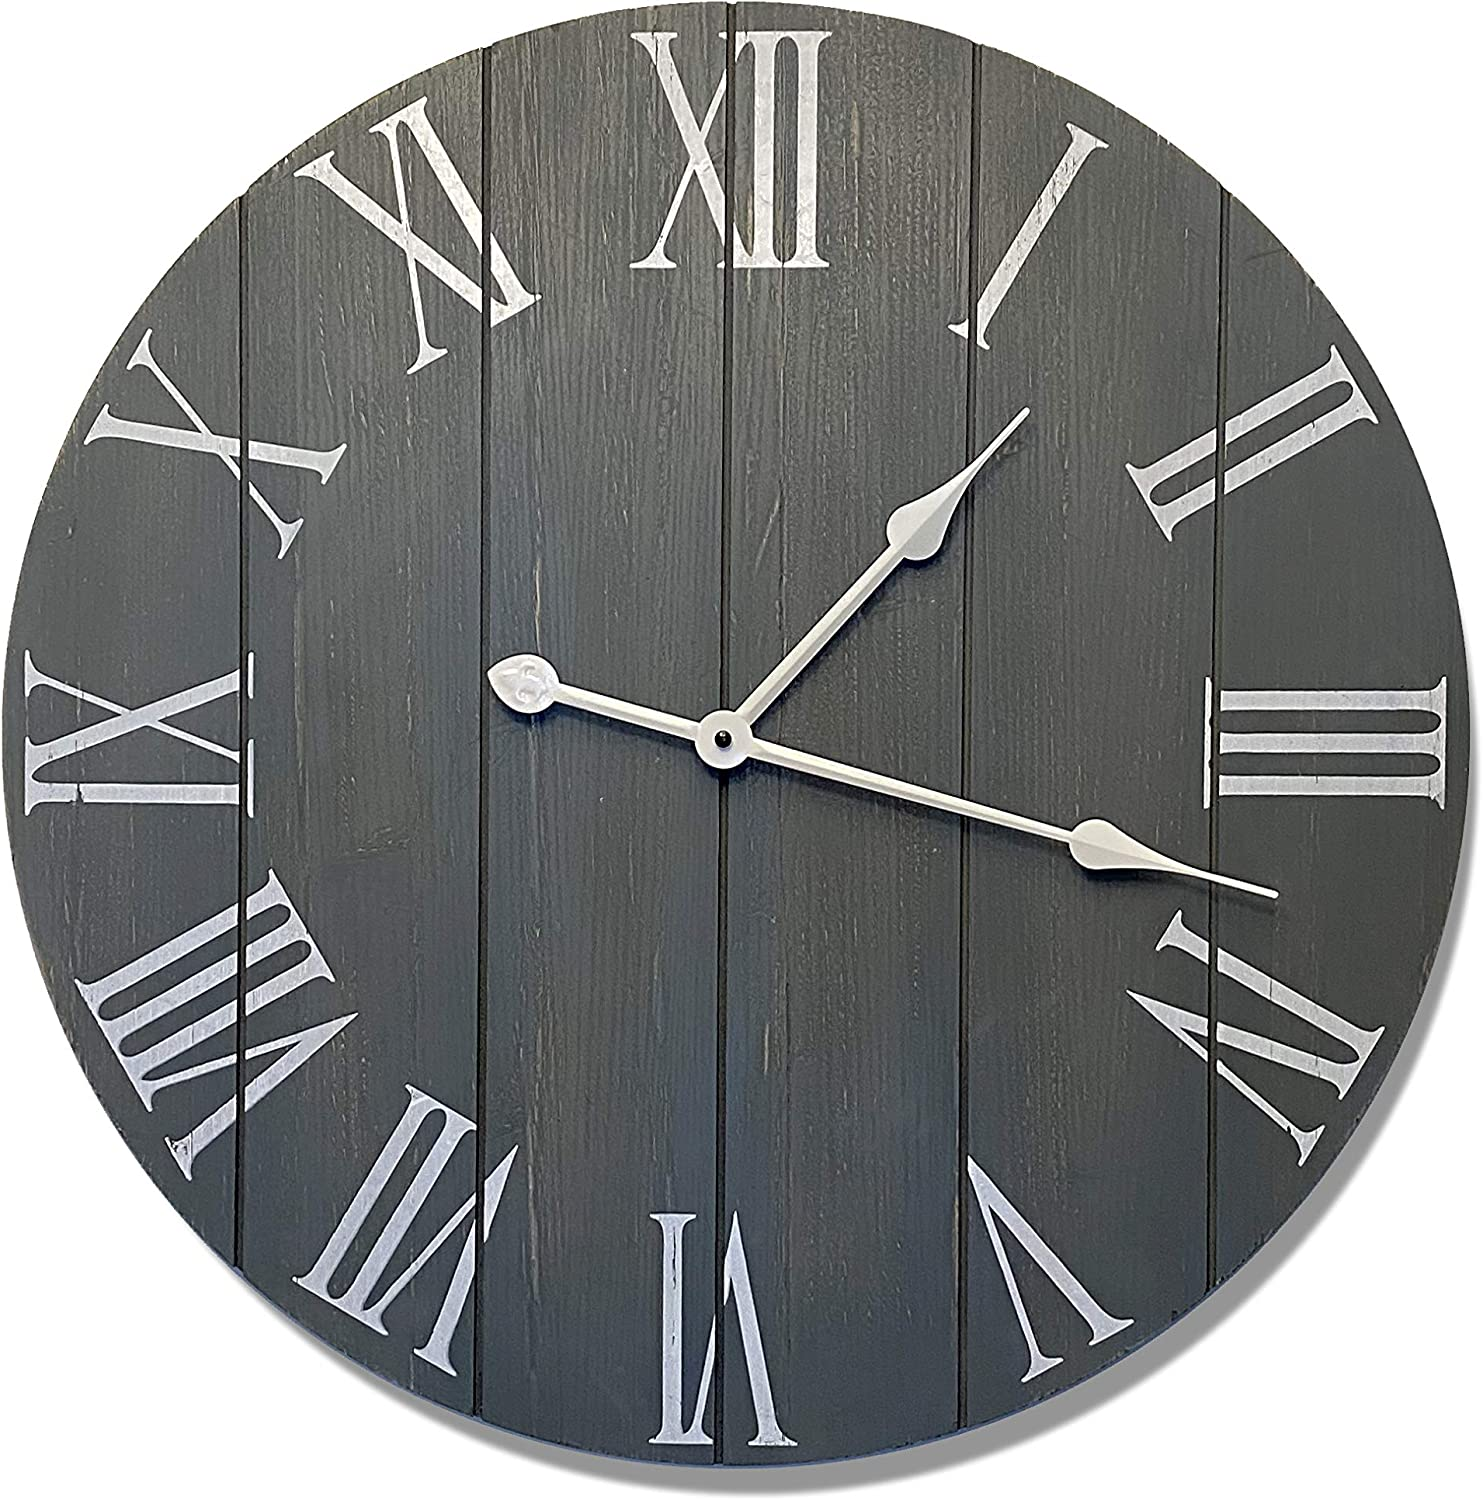 24 Large Gray Farmhouse Wall Clock Rustic Farmhouse Clock Wood Farmhouse Clock Rustic Vintage Decoration 24 Wall Clock Grey Big Rustic Clock Farmhouse Wall Clock